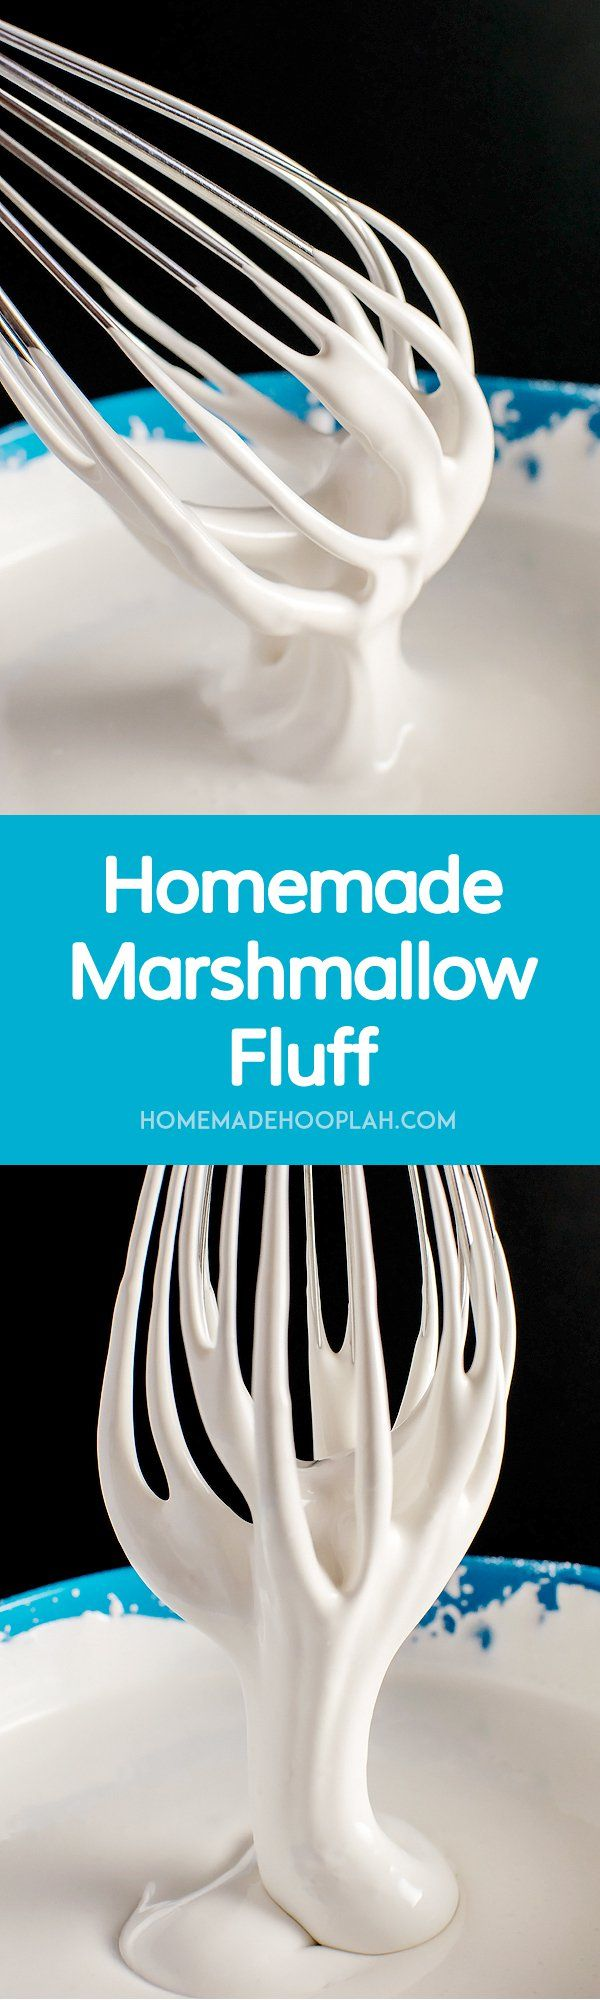 Homemade Marshmallow Fluff! Forget to buy the marshmallow fluff? Yeah, me too. Good thing you can make your own at home - and save a few dollars, too! | HomemadeHooplah.com